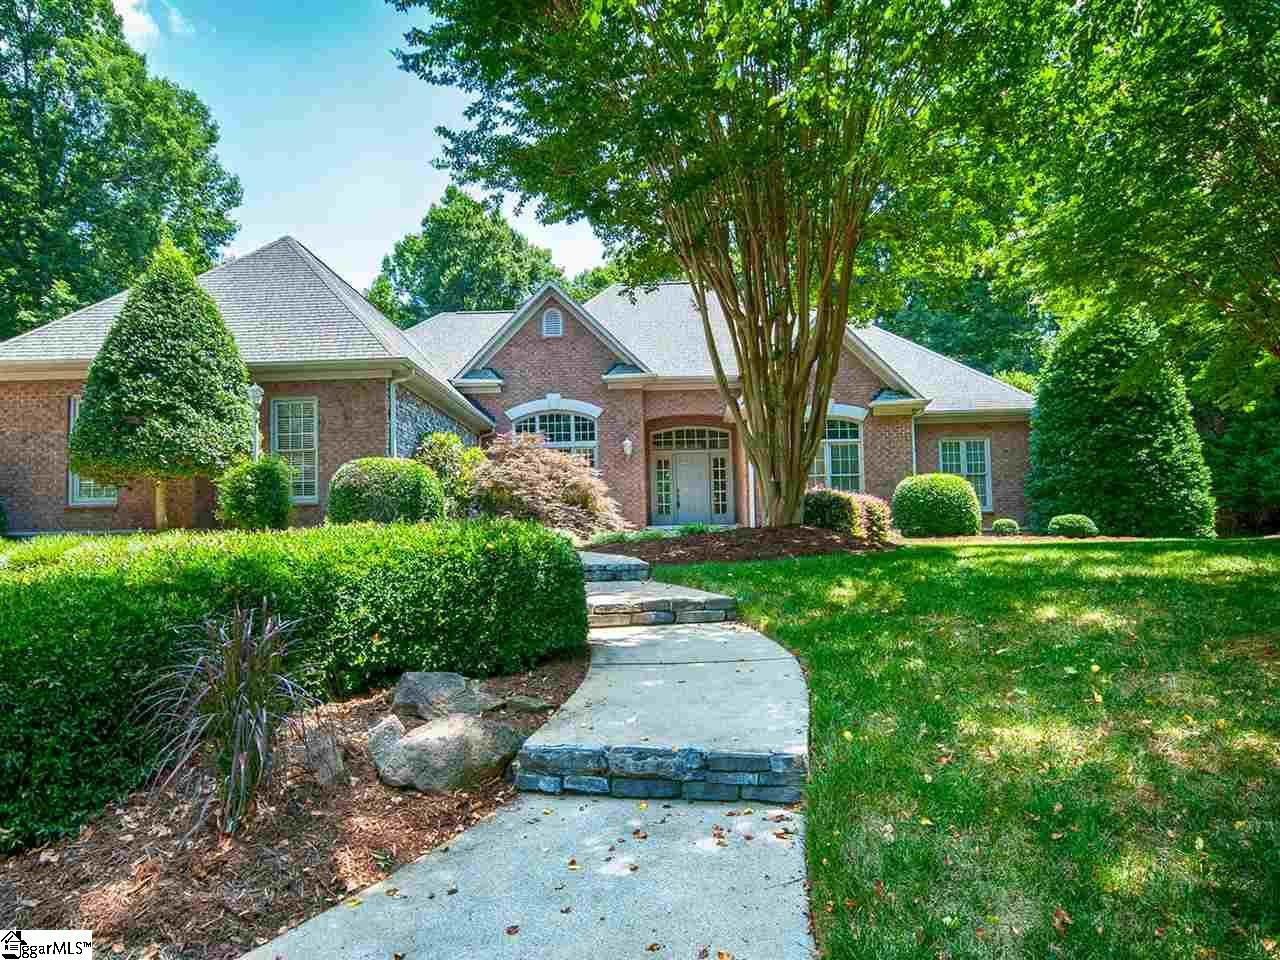 116 Pinehaven Way Simpsonville, SC 29680 | MLS 1370266 Photo 1 - 116 Pinehaven Way Simpsonville, SC 29680 MLS 1370266